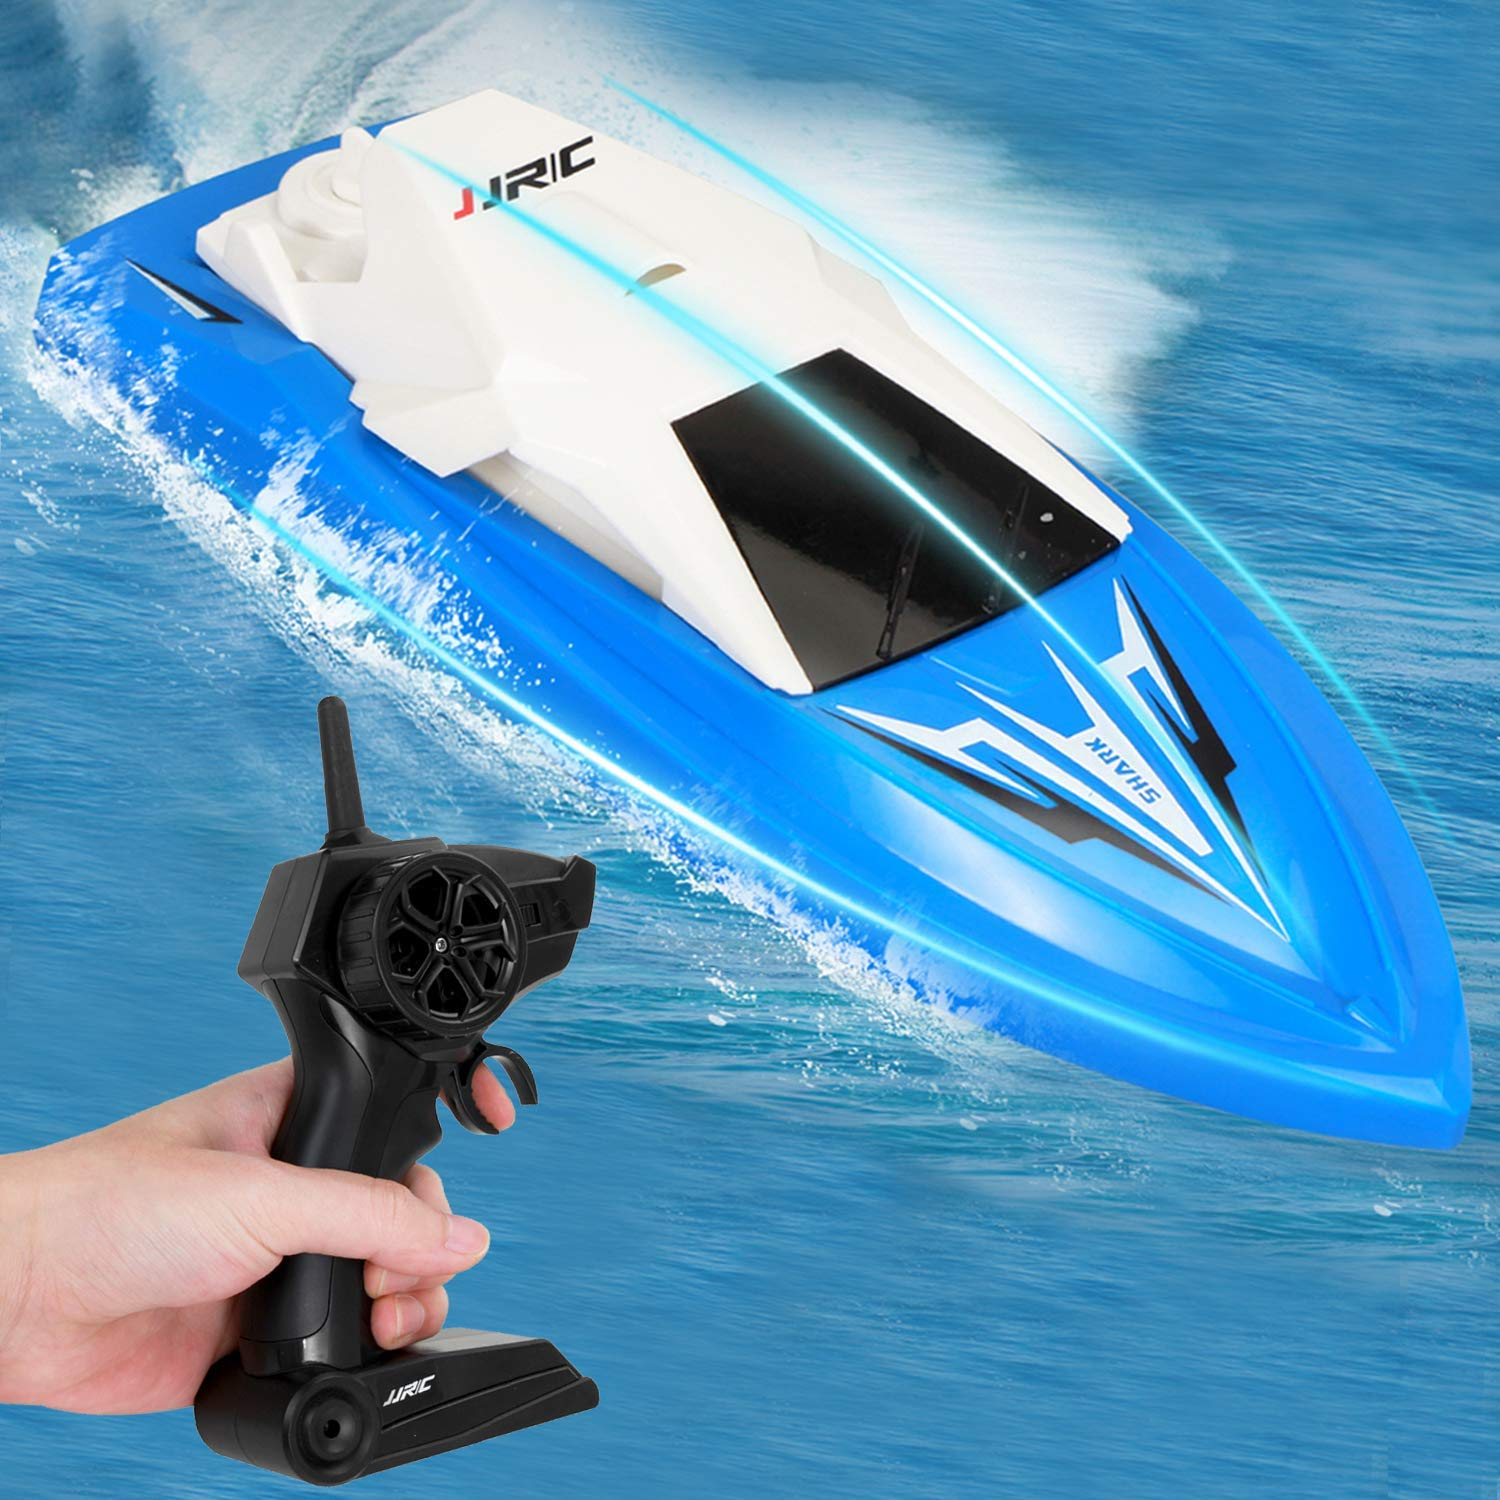 GotechoD Remote Control Boat for Kids Adults RC Boats for Pools and Lakes 2.4Ghz Racing Boats High Speed 20minutes Play Time Rechargeable Electric RC Toys for 6,7,8-16 Year Old Boys Girls Gifts Blue